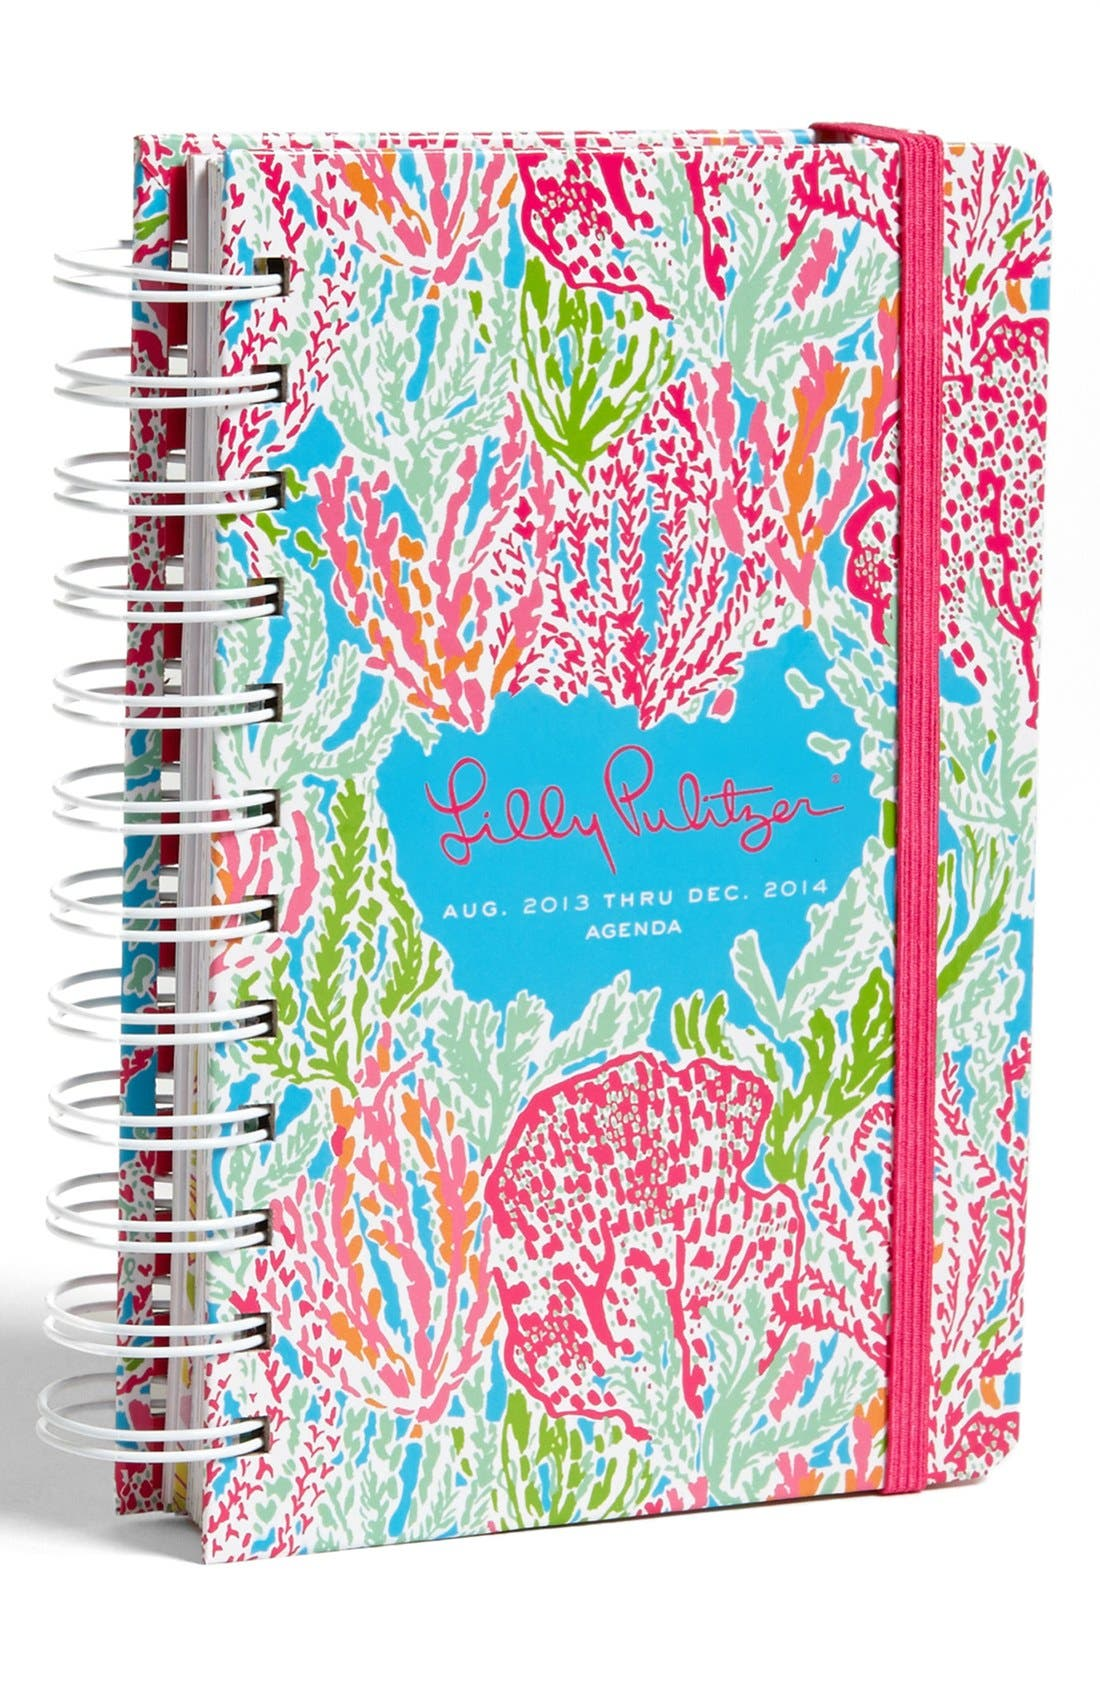 Alternate Image 1 Selected - Lilly Pulitzer® 'Let's Cha Cha' Pocket Agenda